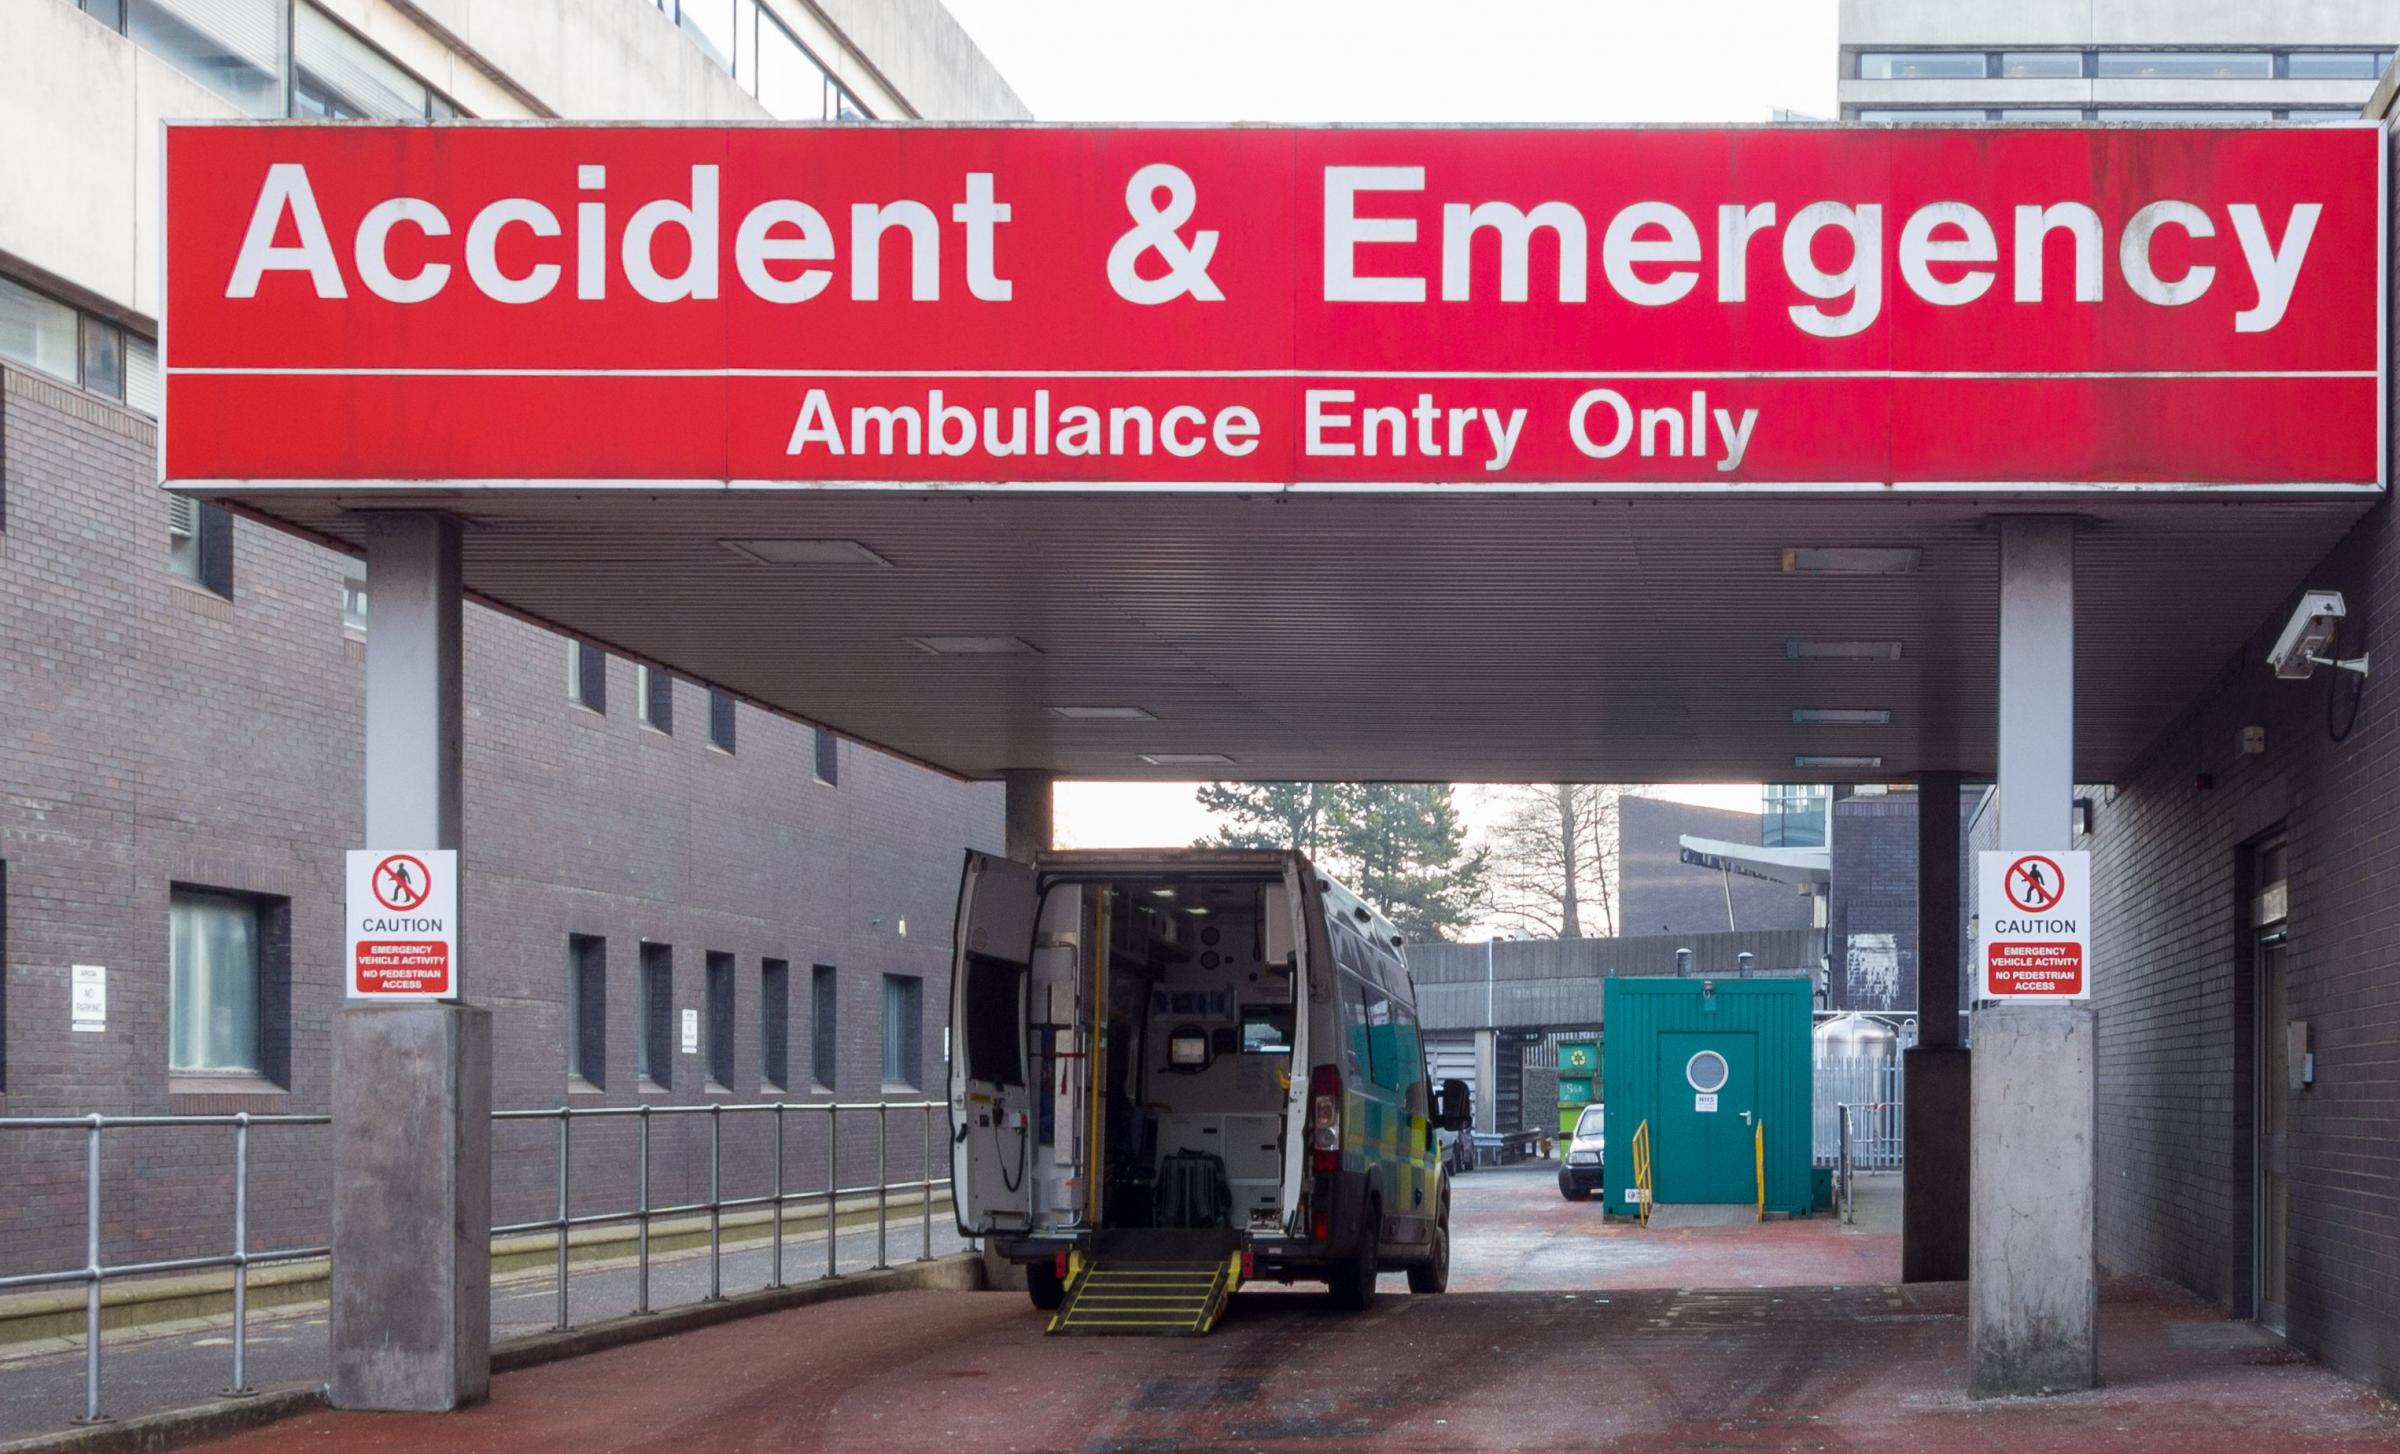 Accident and Emergency hospital entrance with open ambulance parked outside - UK.